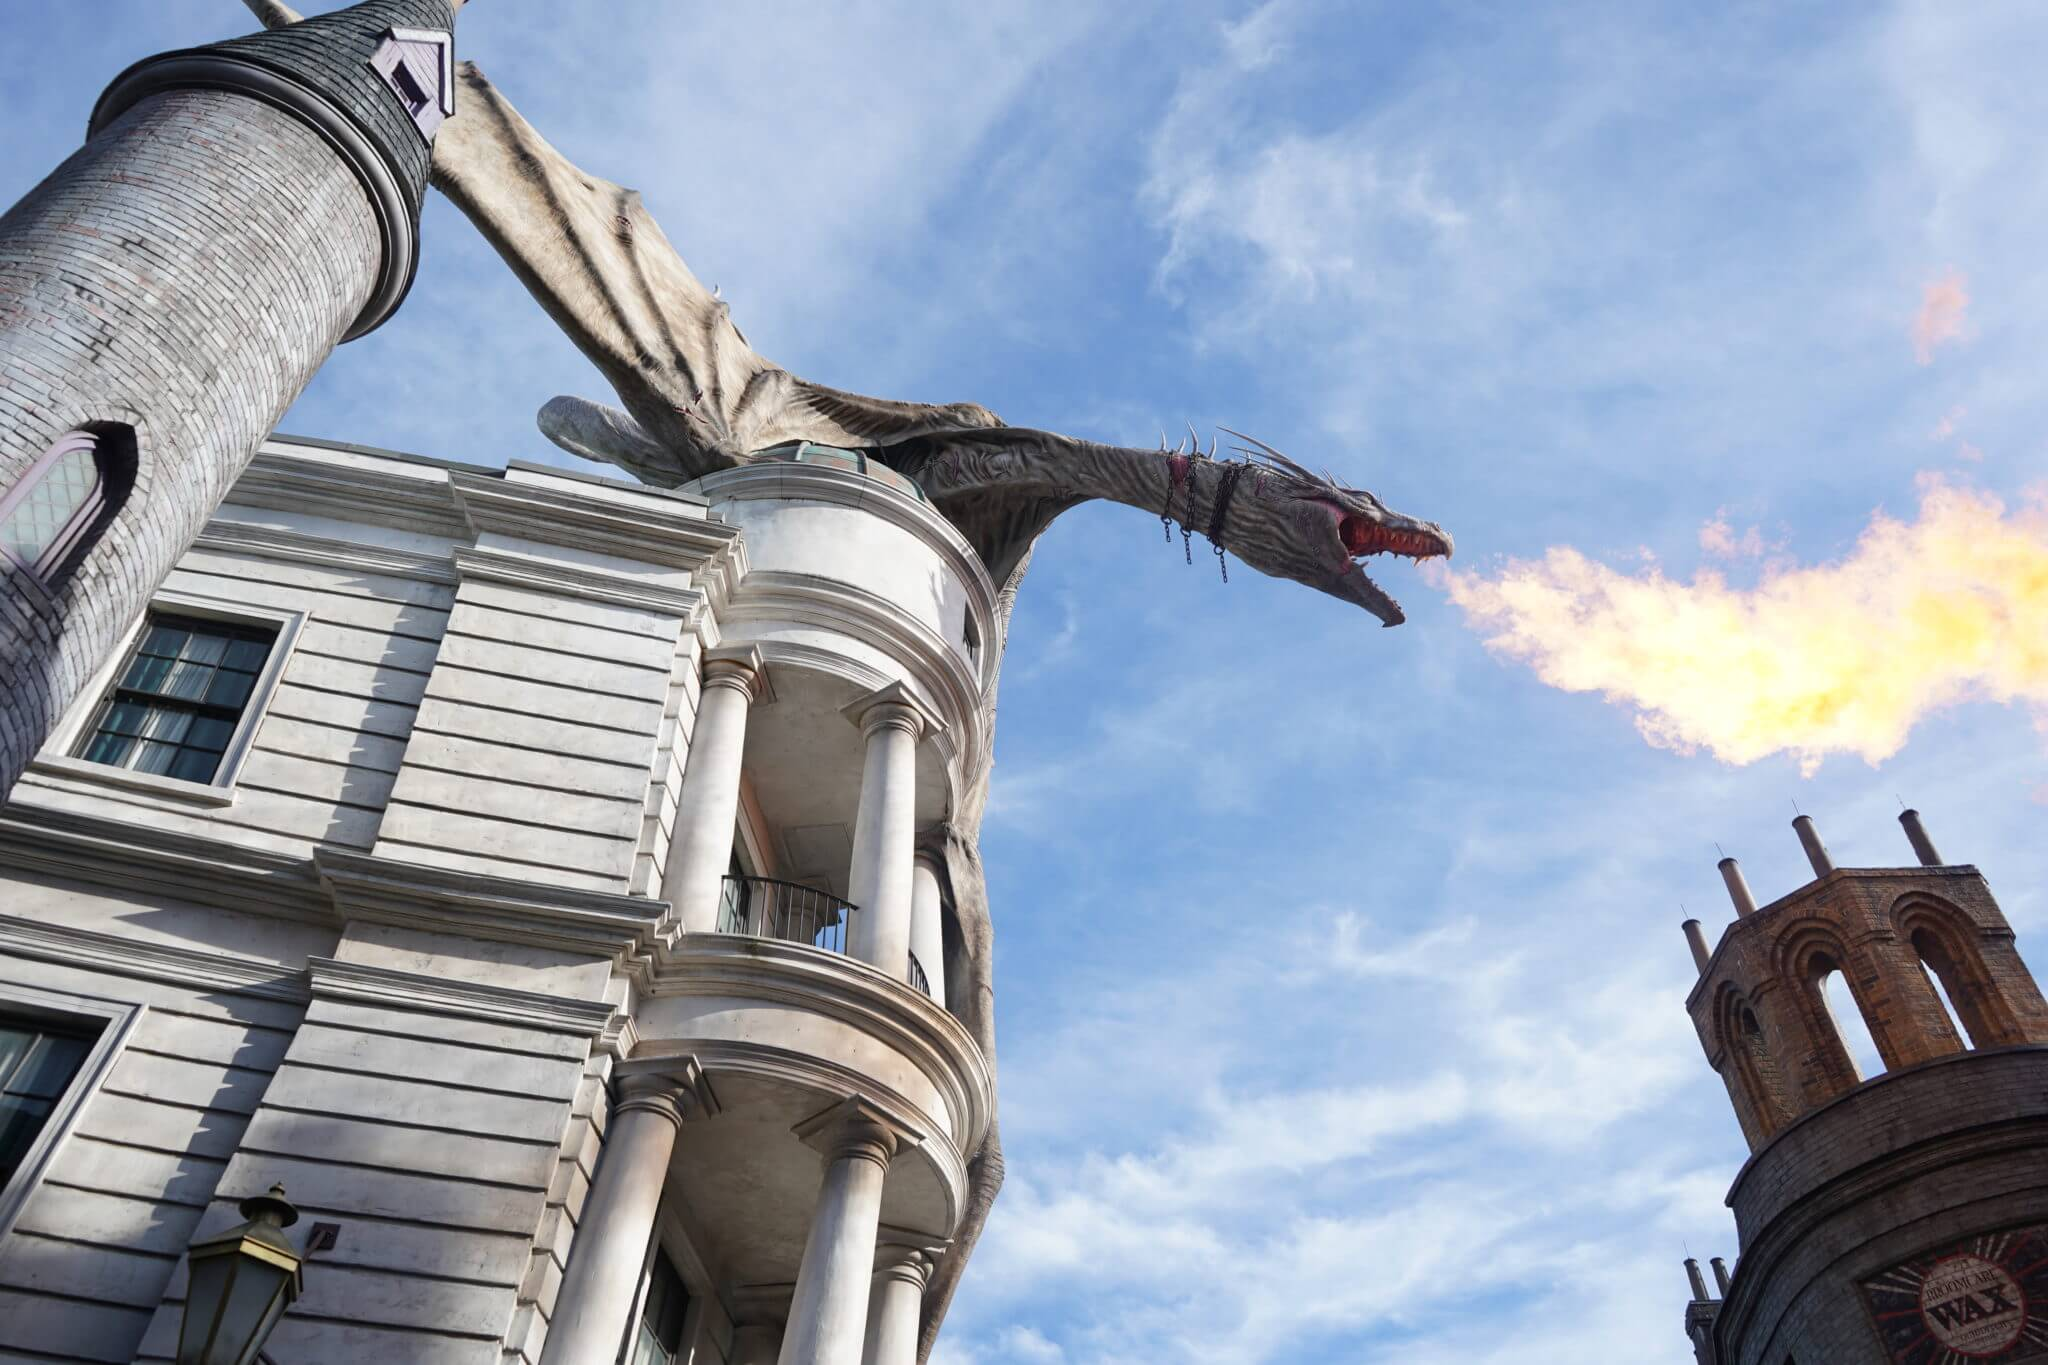 12 Things to Do at Universal Studios Orlando for Adults